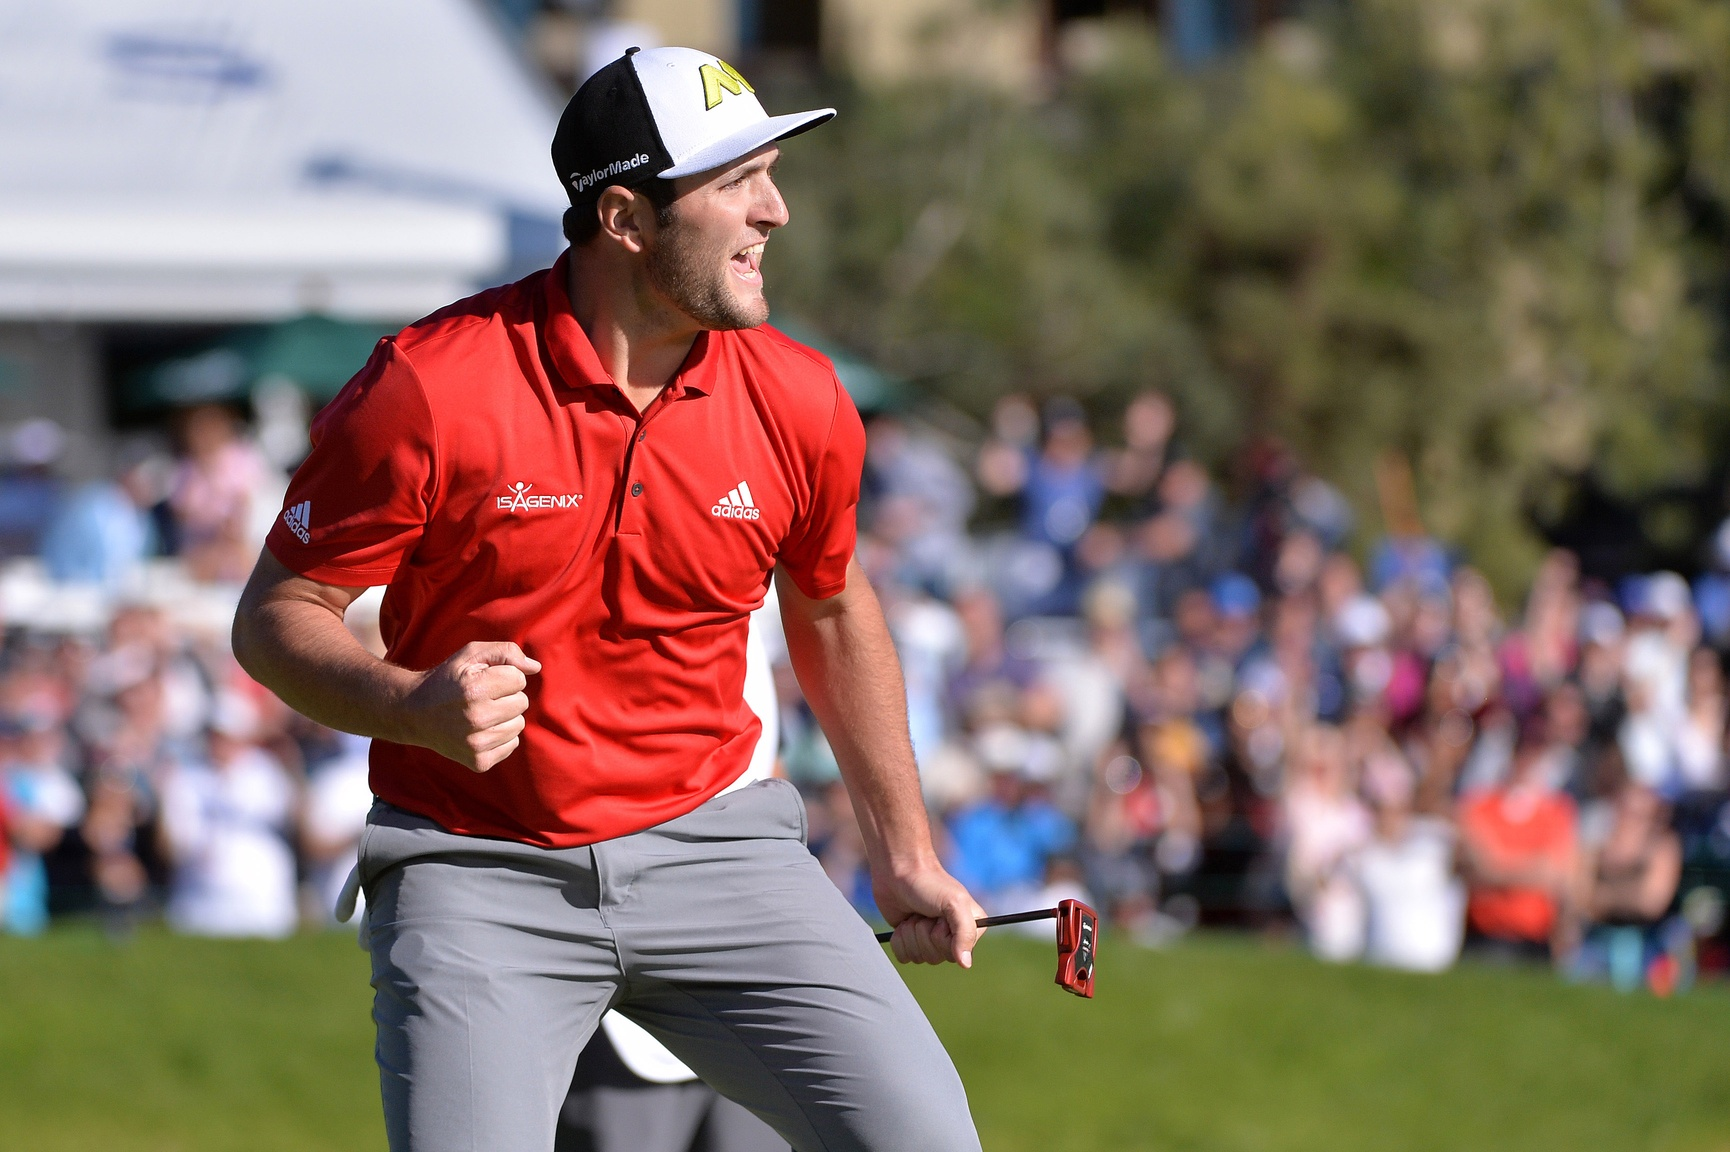 Jon Rahm was just the second player to win in his debut at the Farmers Insurance Open (Arnold Palmer was the other).